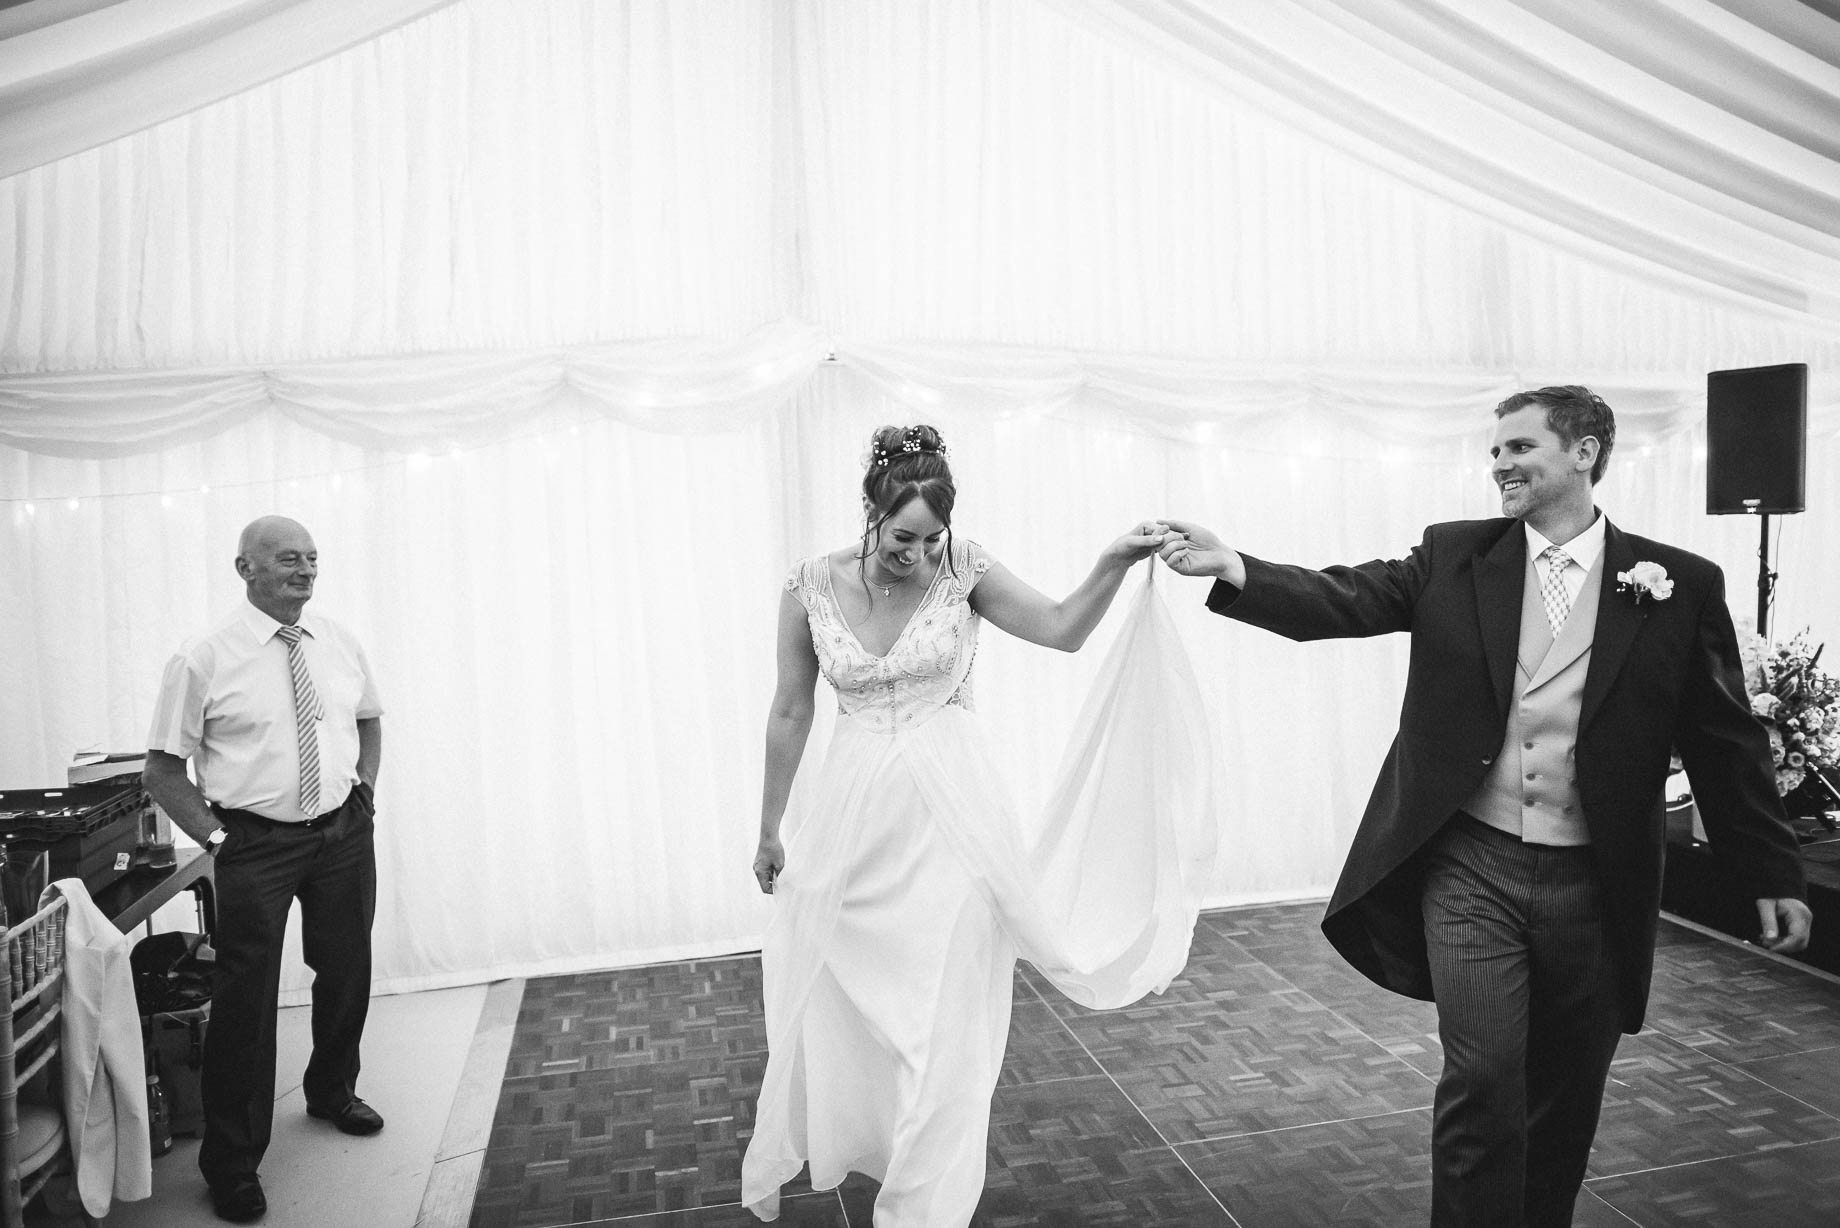 Windsor wedding photography - Guy Collier Photography - Libby and Alex (175 of 189)